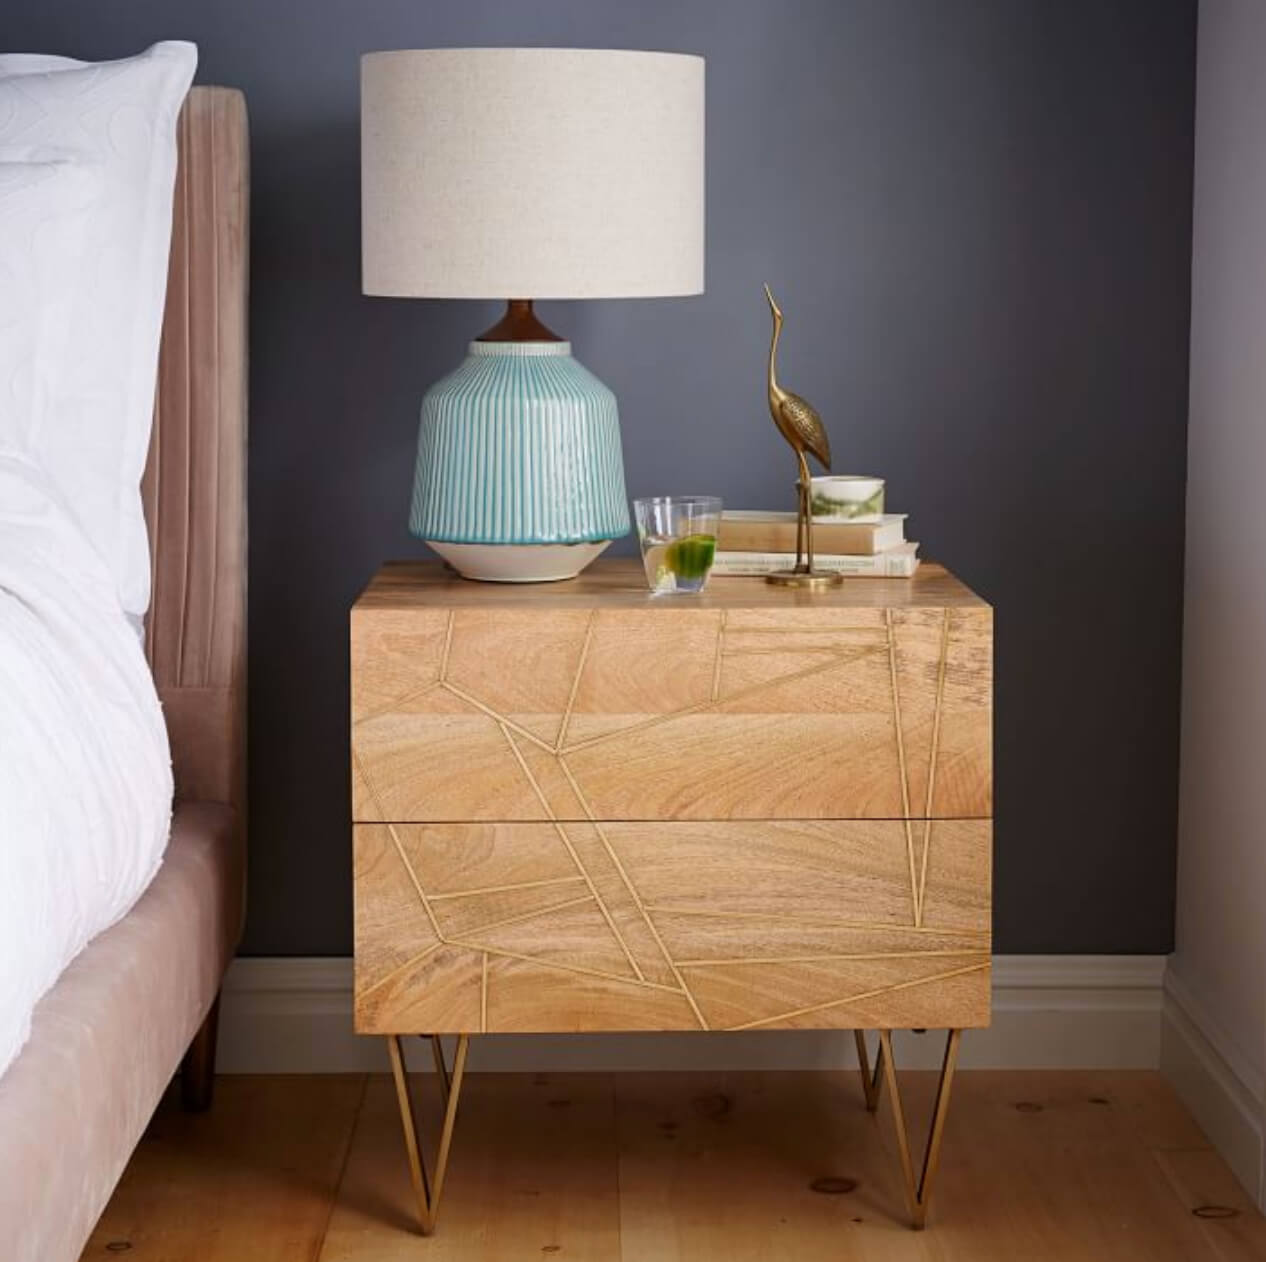 West Elm styled nightstand